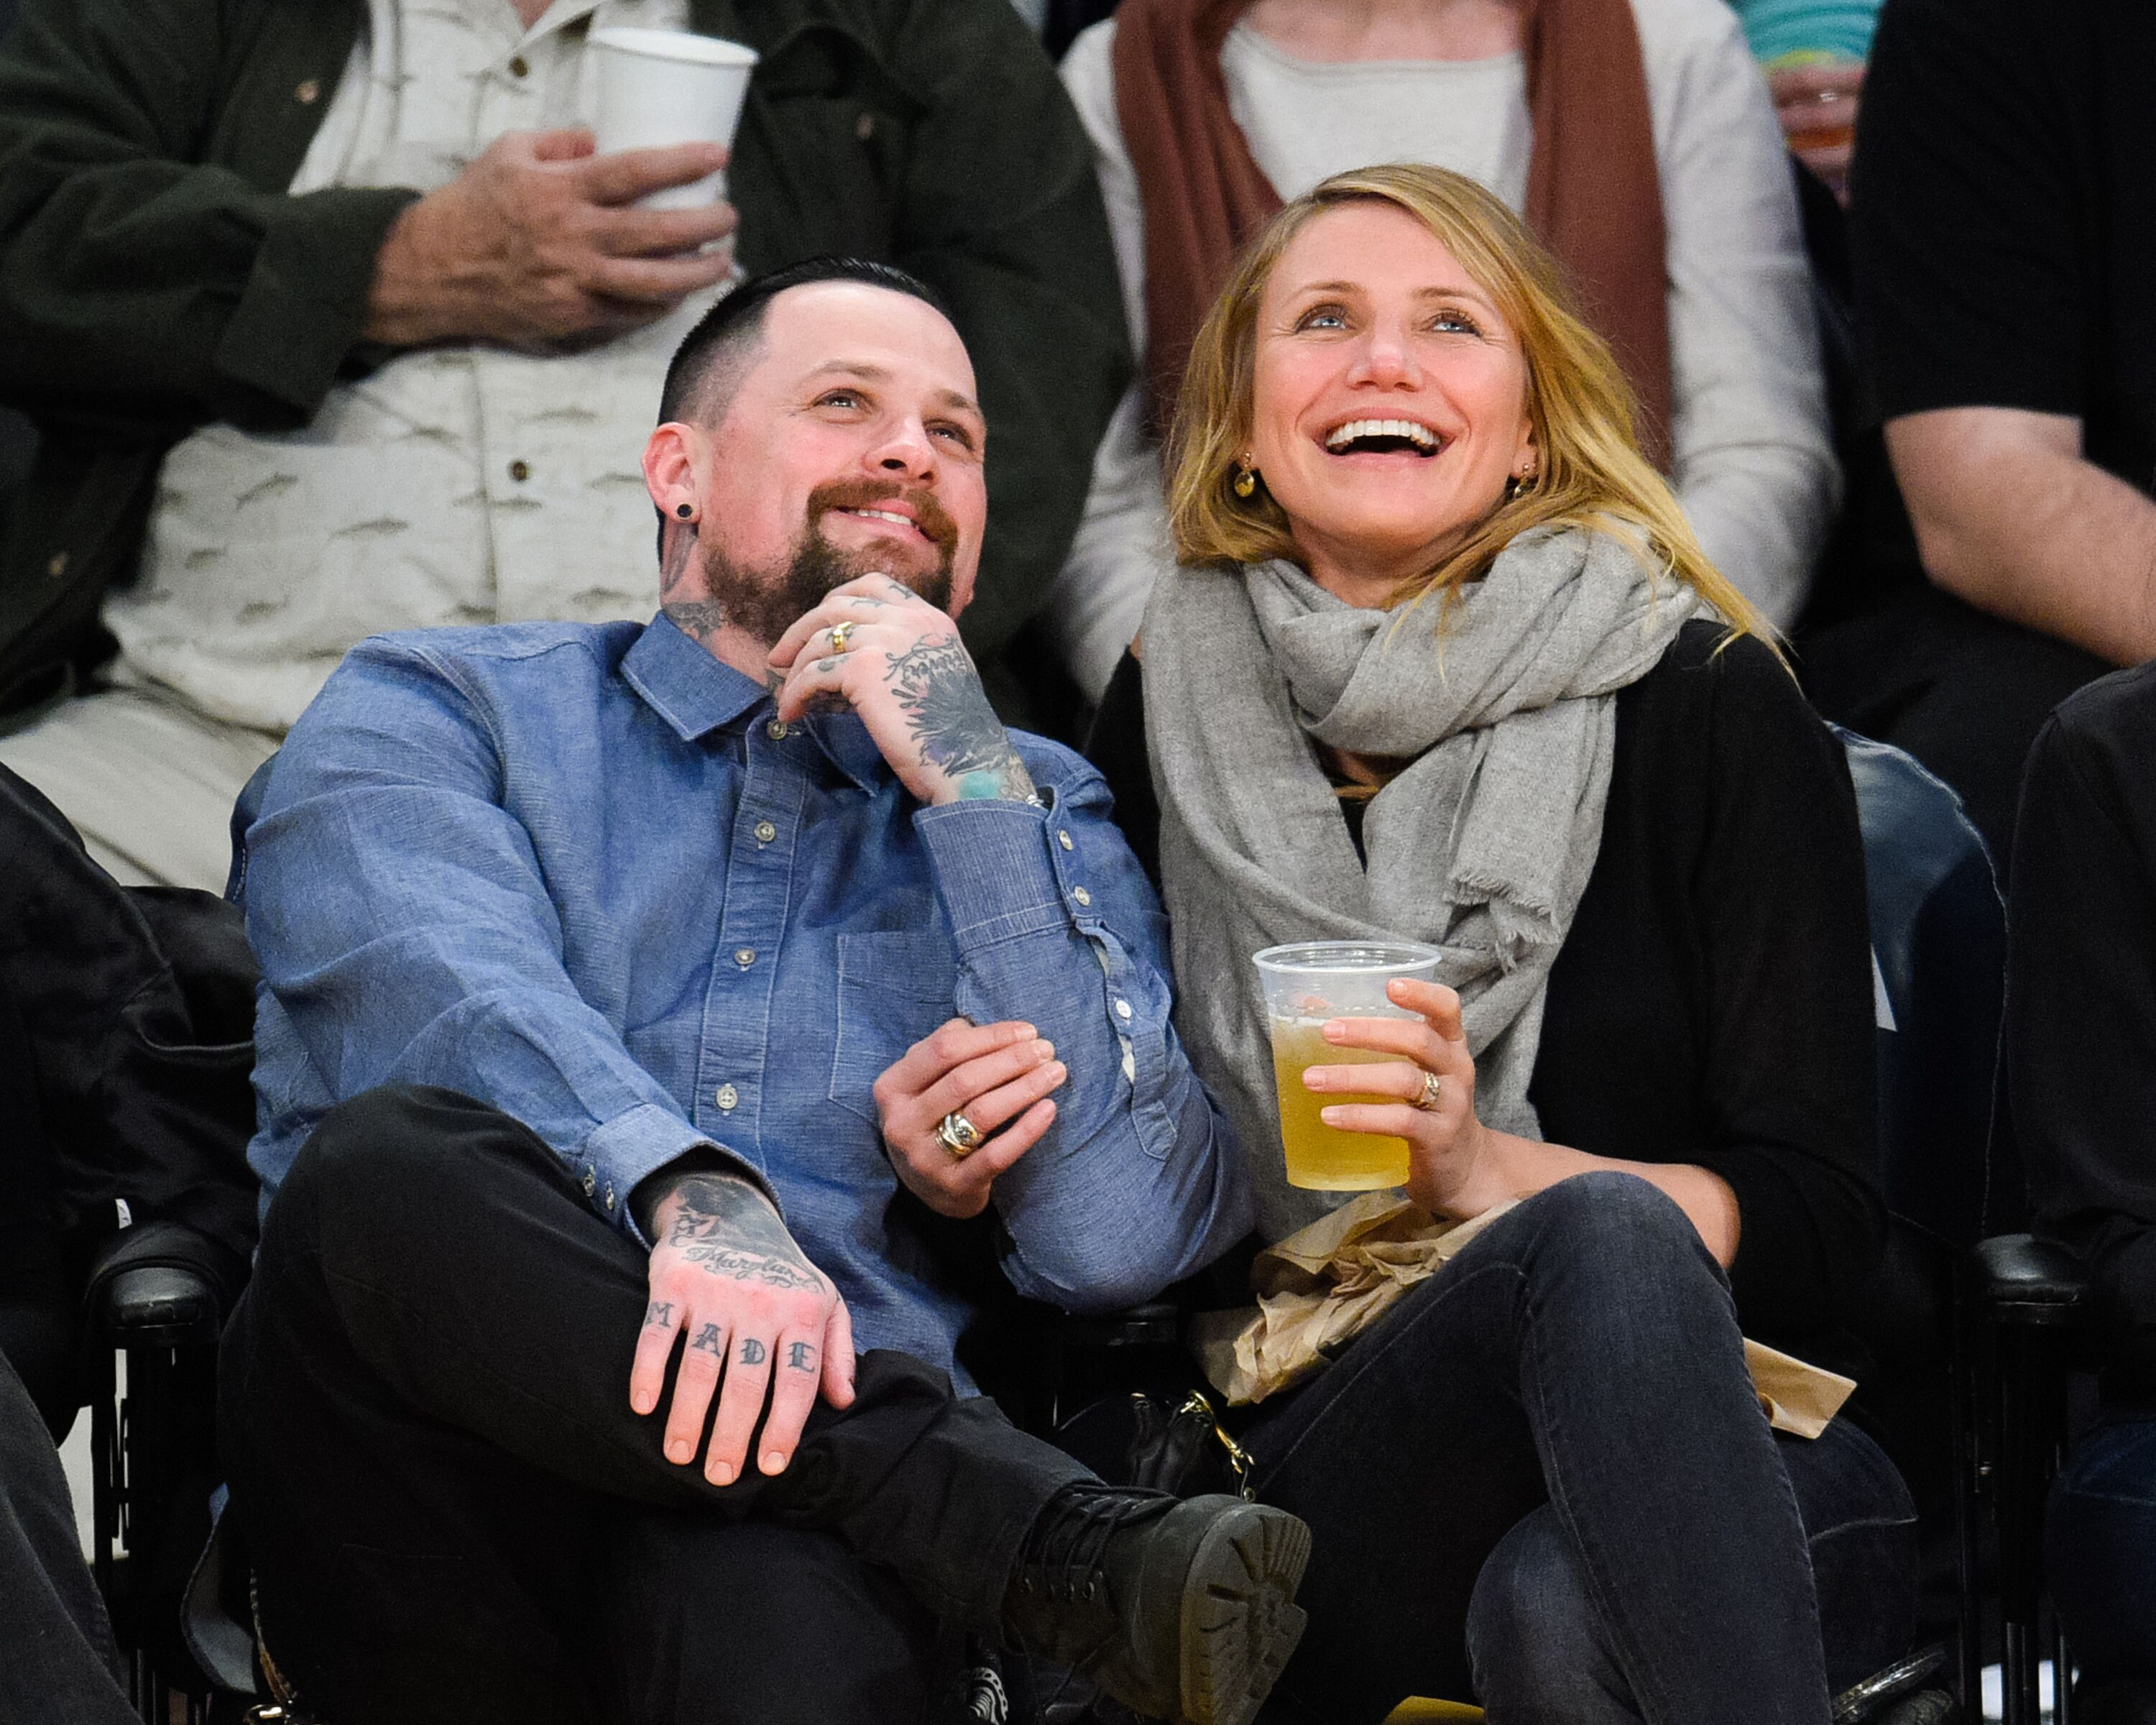 Benji Madden and Cameron Diaz at a basketball game between the Washington Wizards and the Los Angeles Lakers in 2015 | Source: Getty Images